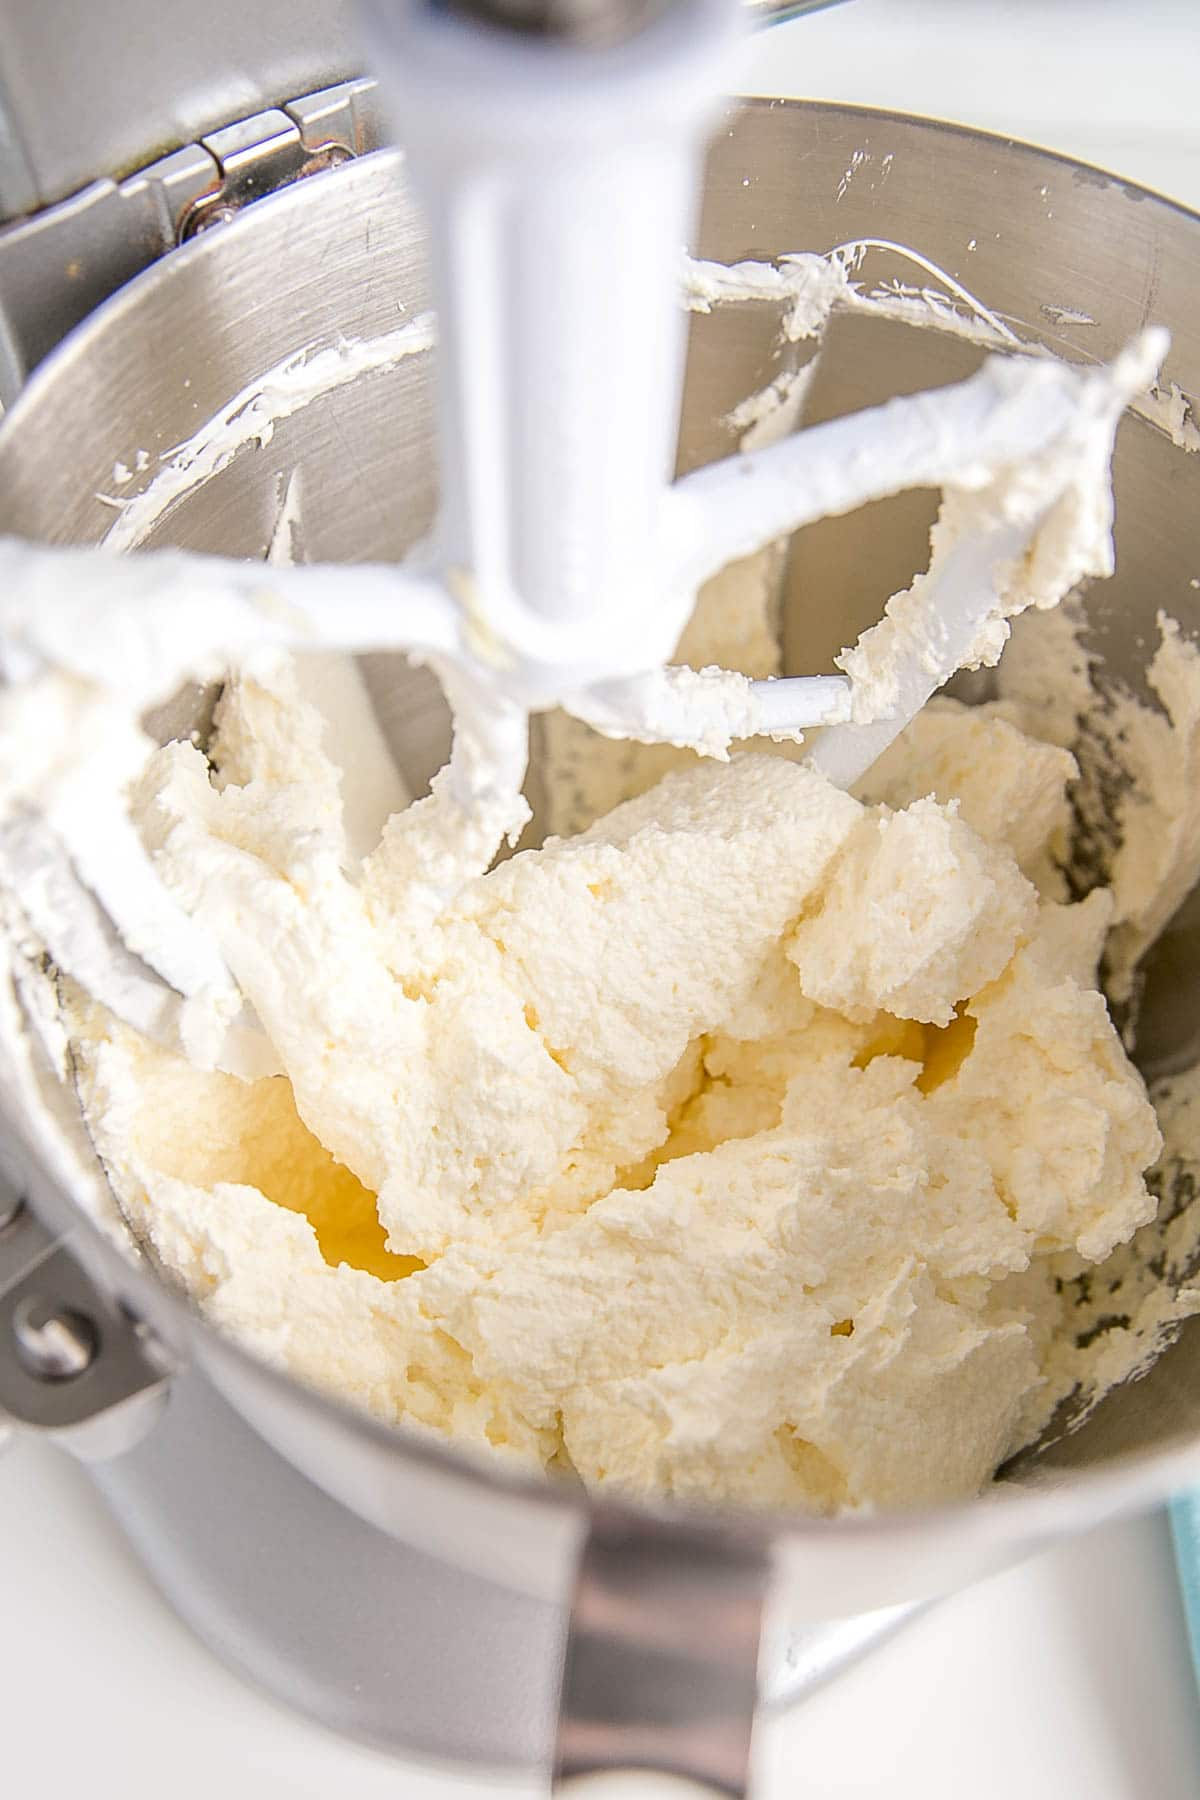 Curdled buttercream